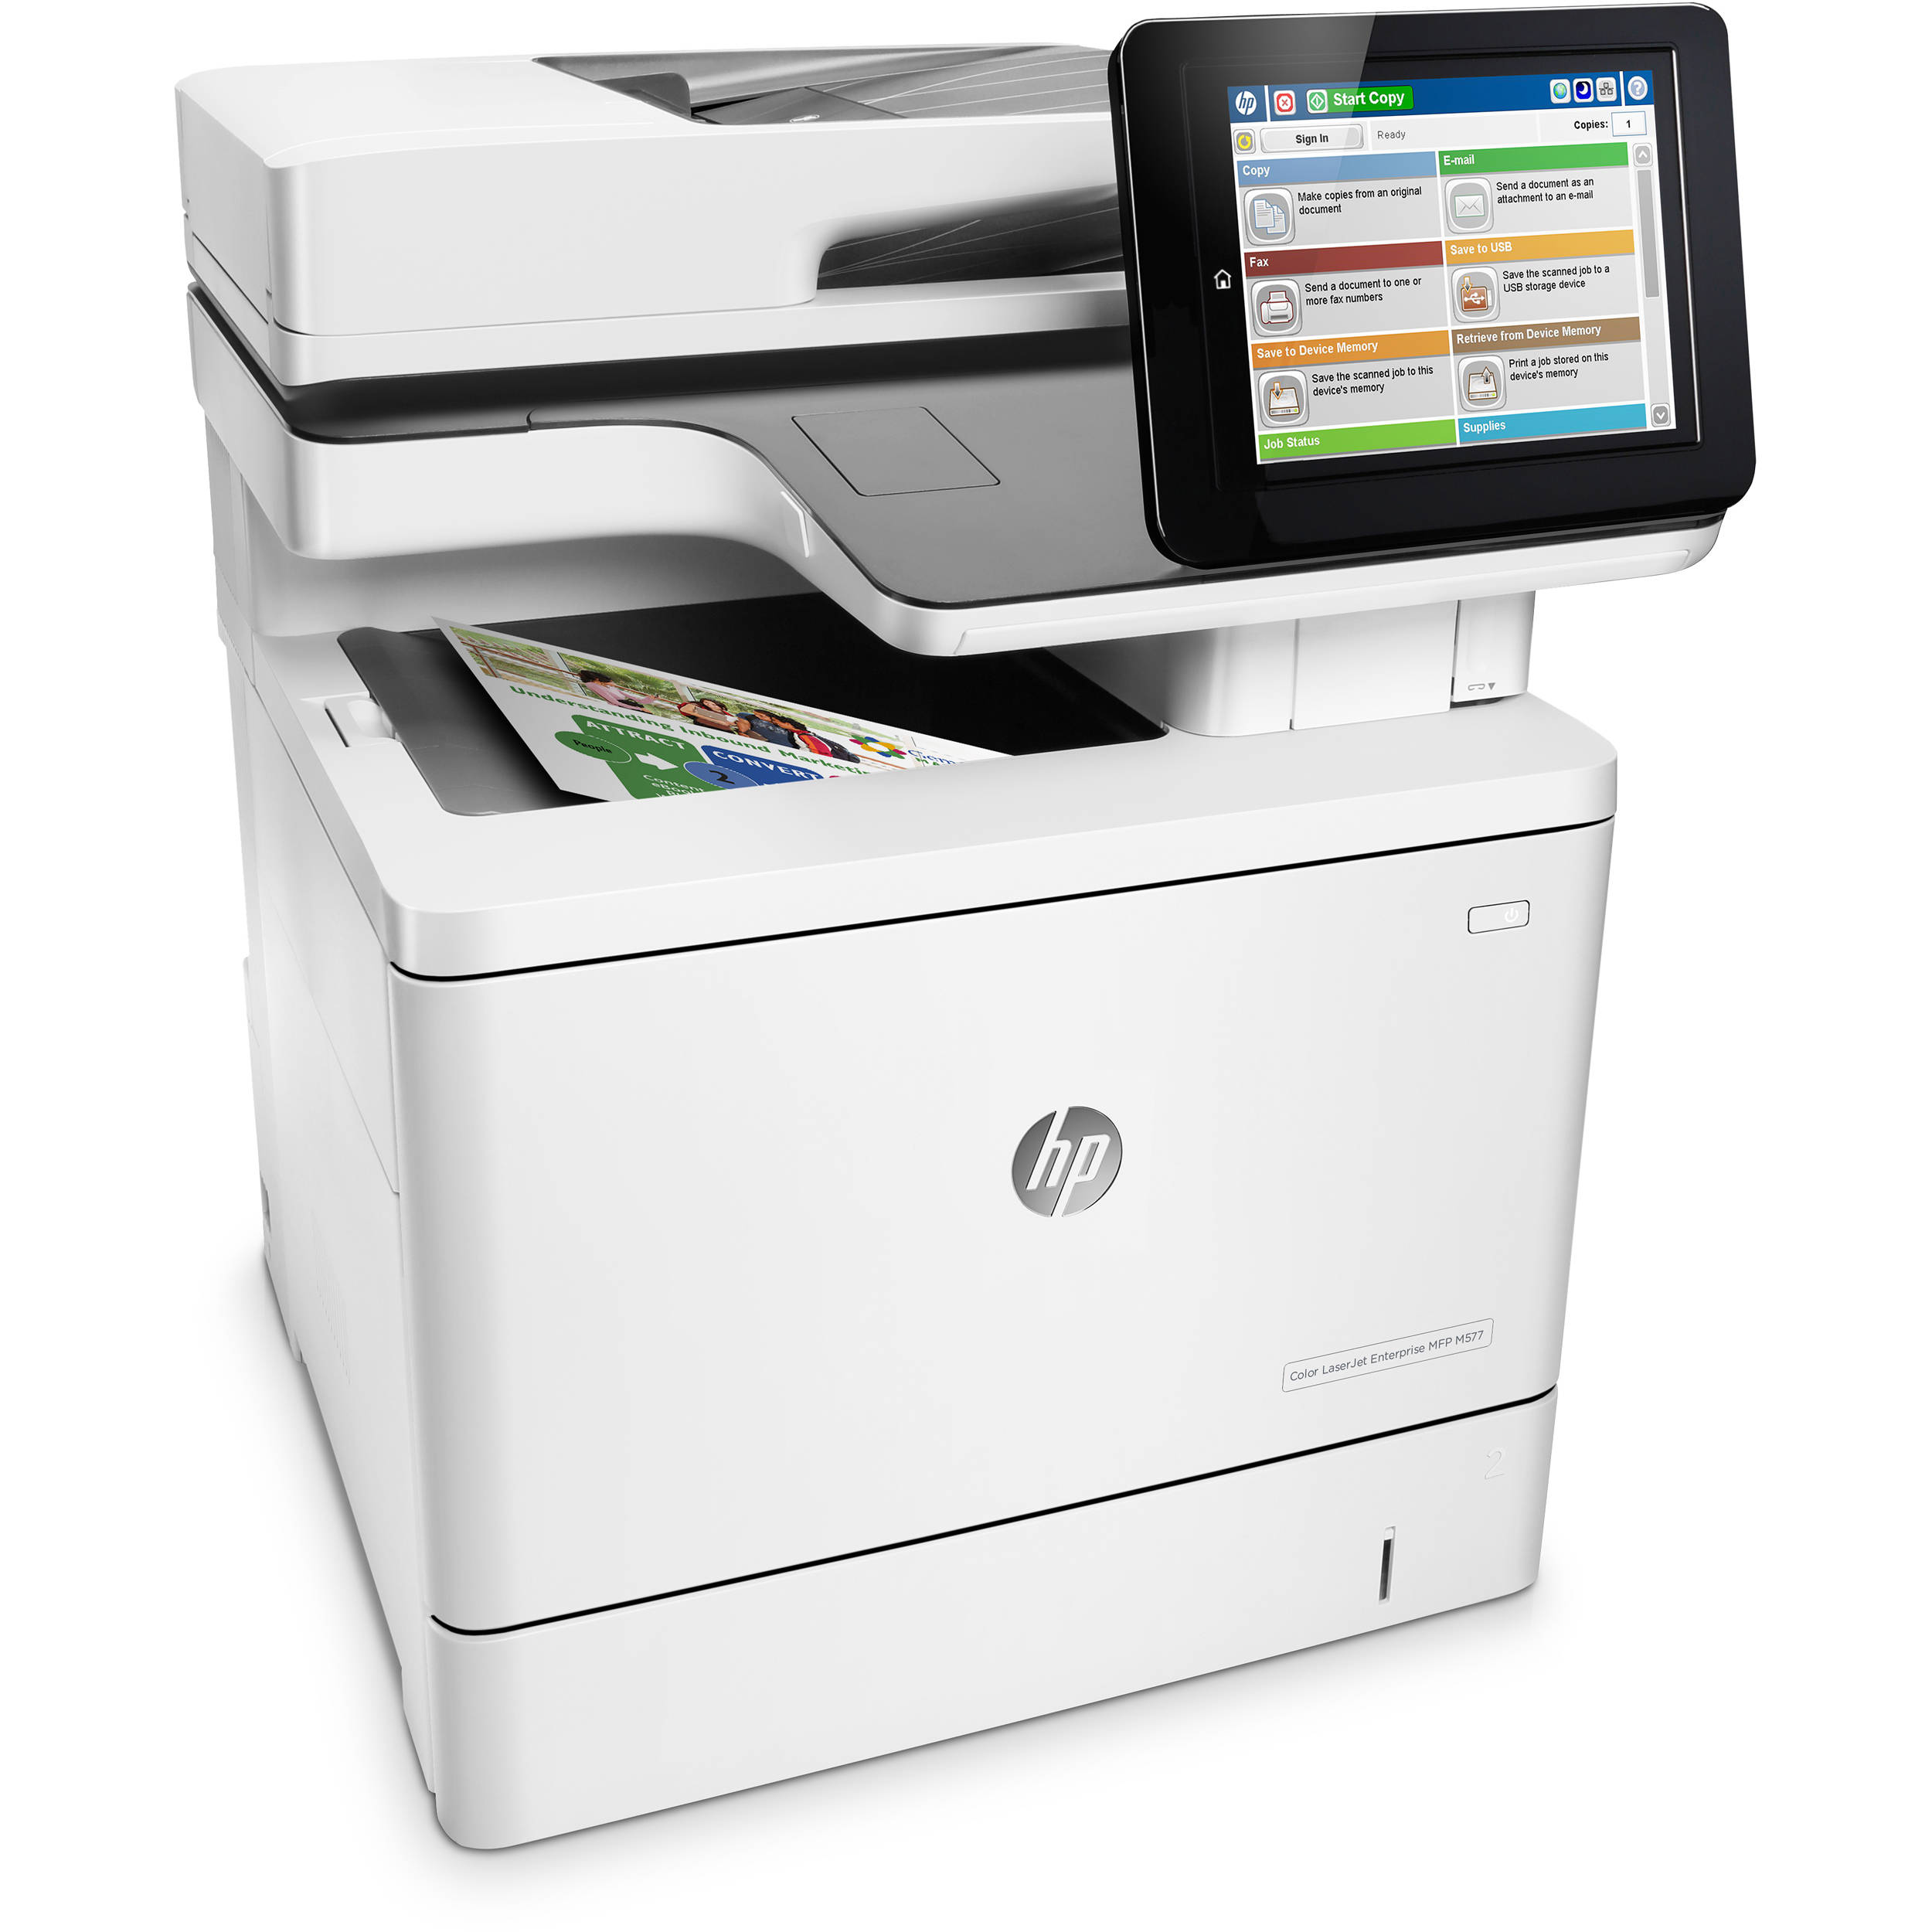 HP Color LaserJet Enterprise M577f All-in-One Laser Printer